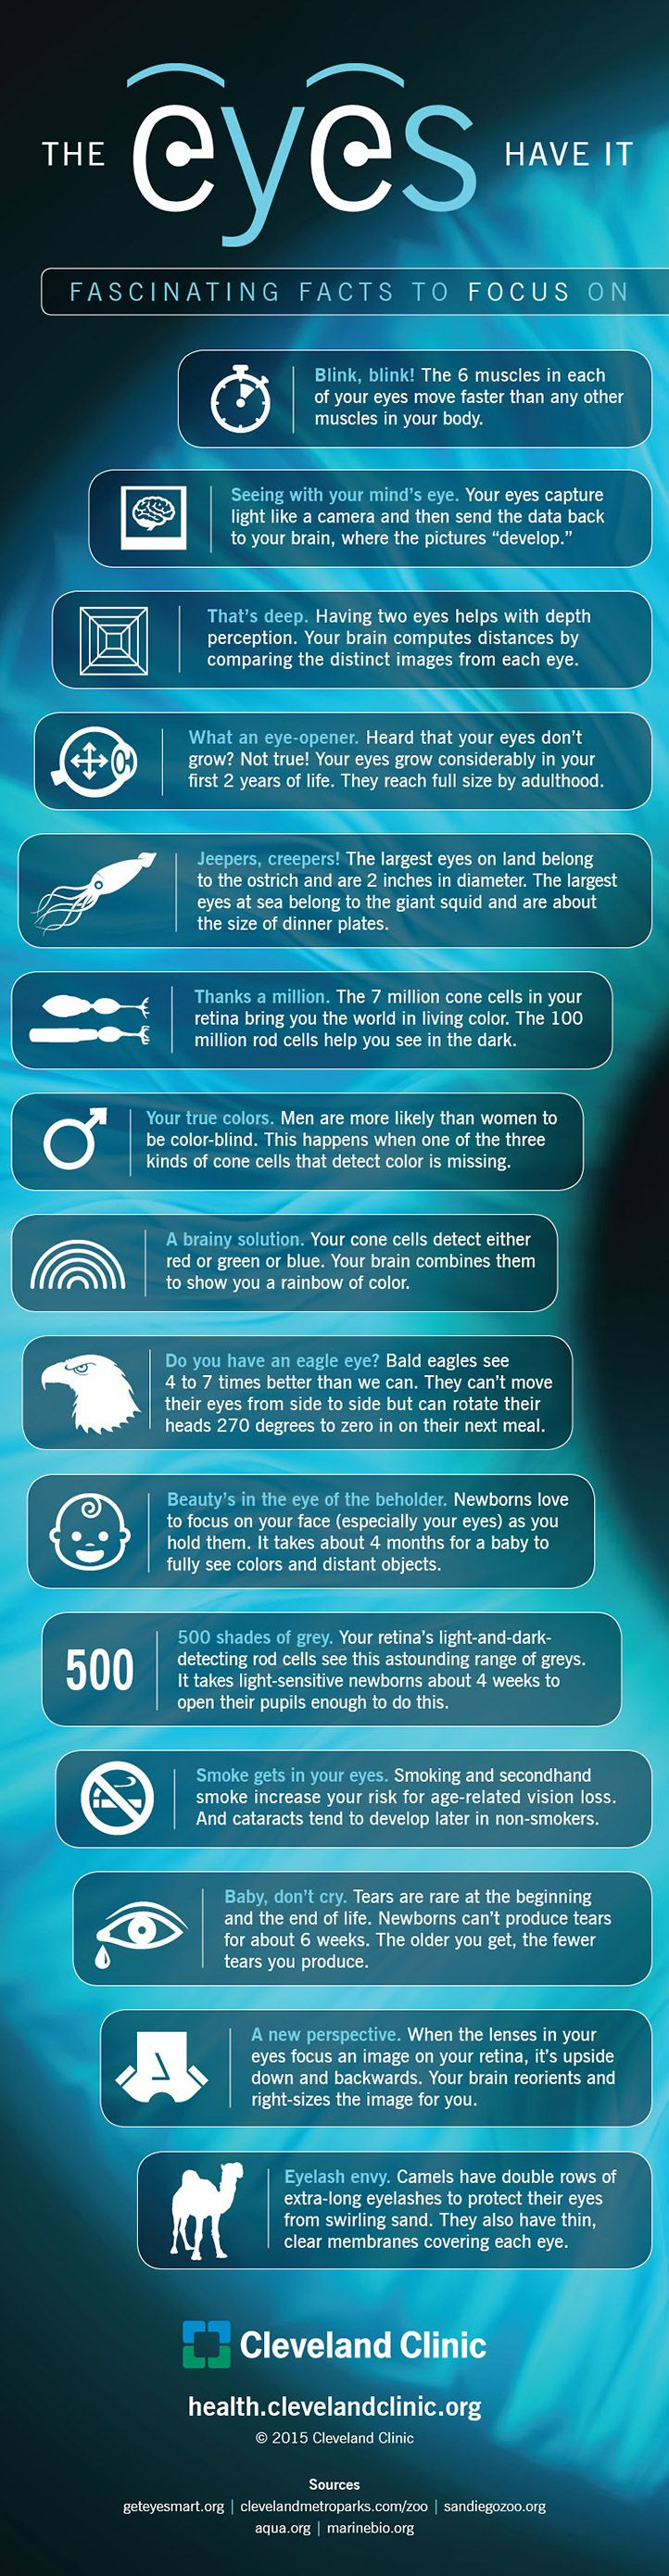 Best Images About Optical On Pinterest The Internet - 15 amazing facts about the internet